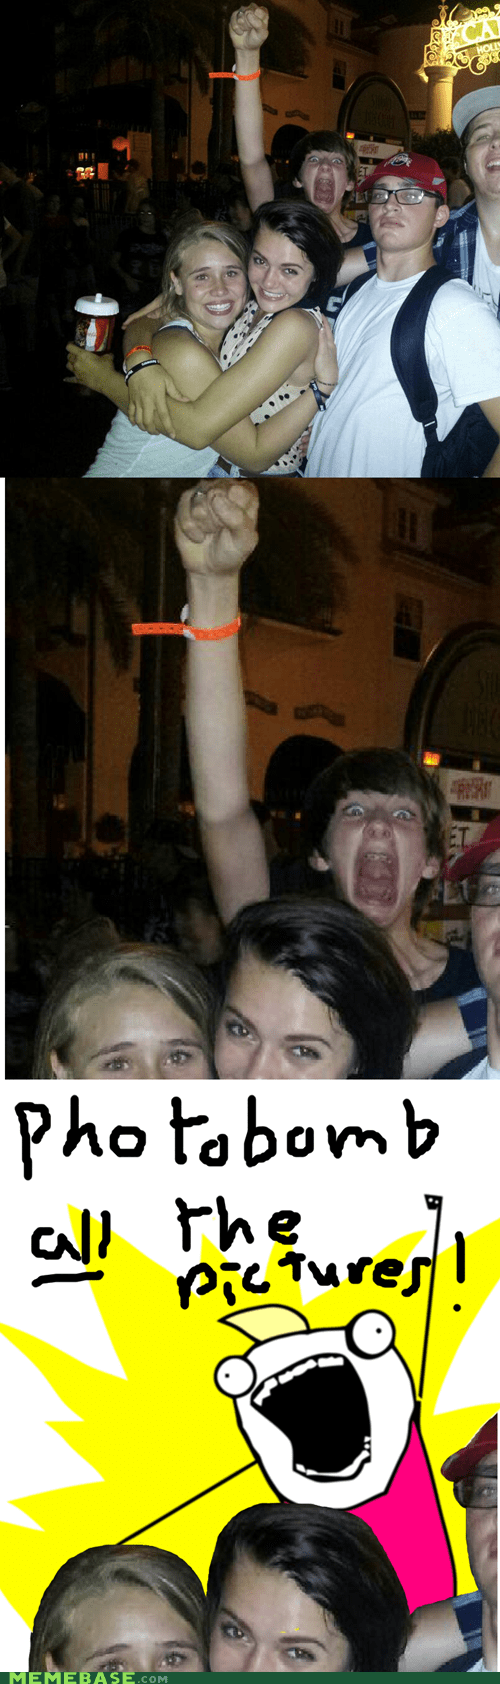 all the things photobomb scary meme - 6651820288